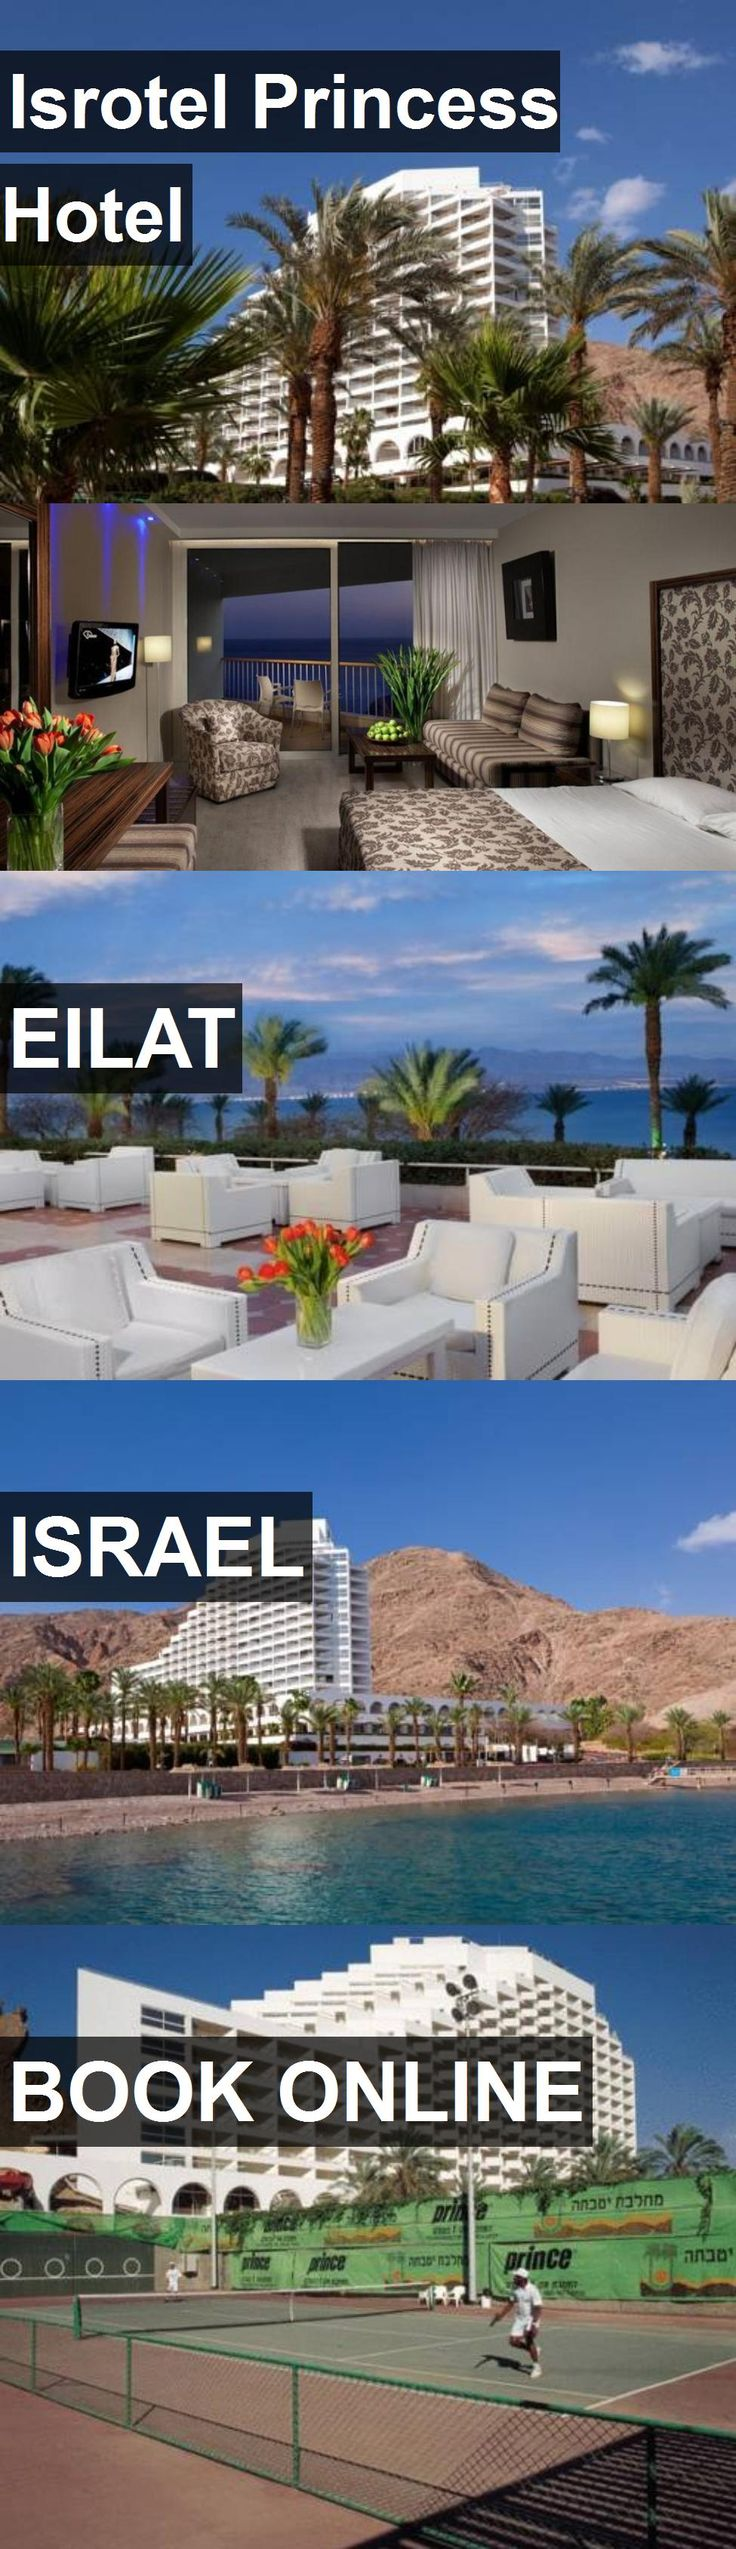 Isrotel Princess Hotel in Eilat, Israel. For more information, photos, reviews and best prices please follow the link. #Israel #Eilat #travel #vacation #hotel